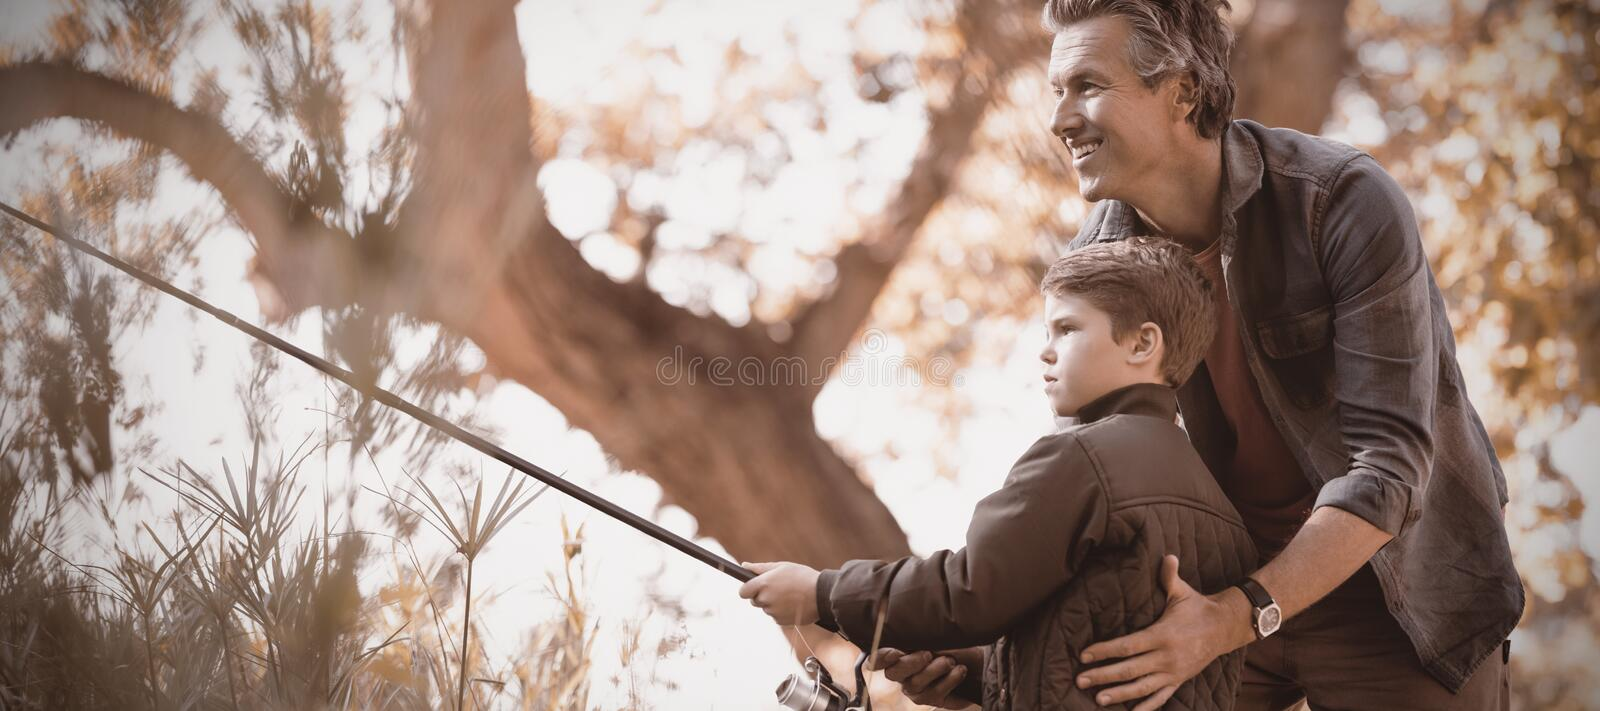 Smiling father assisting son while fishing in forest. Smiling father assisting son while fishing on sunny day in forest stock photography